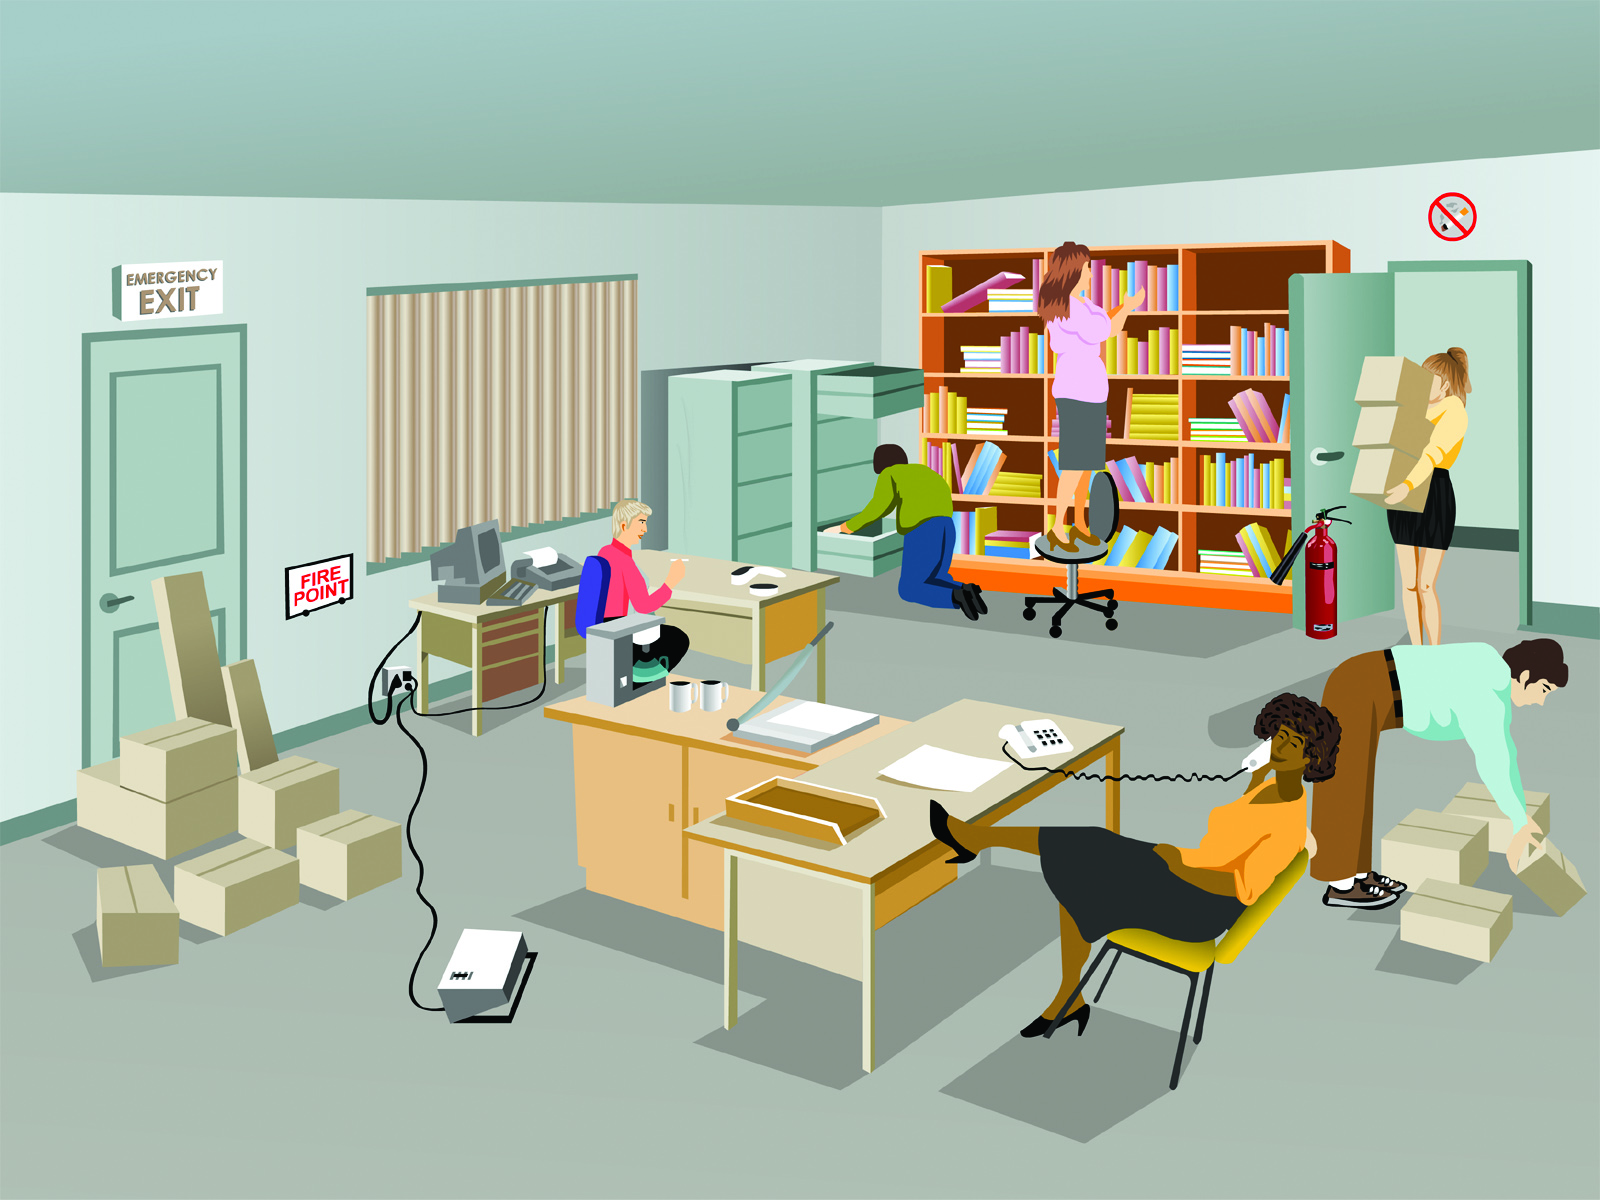 A Few Office Safety Hazards That You May Not Have Thought